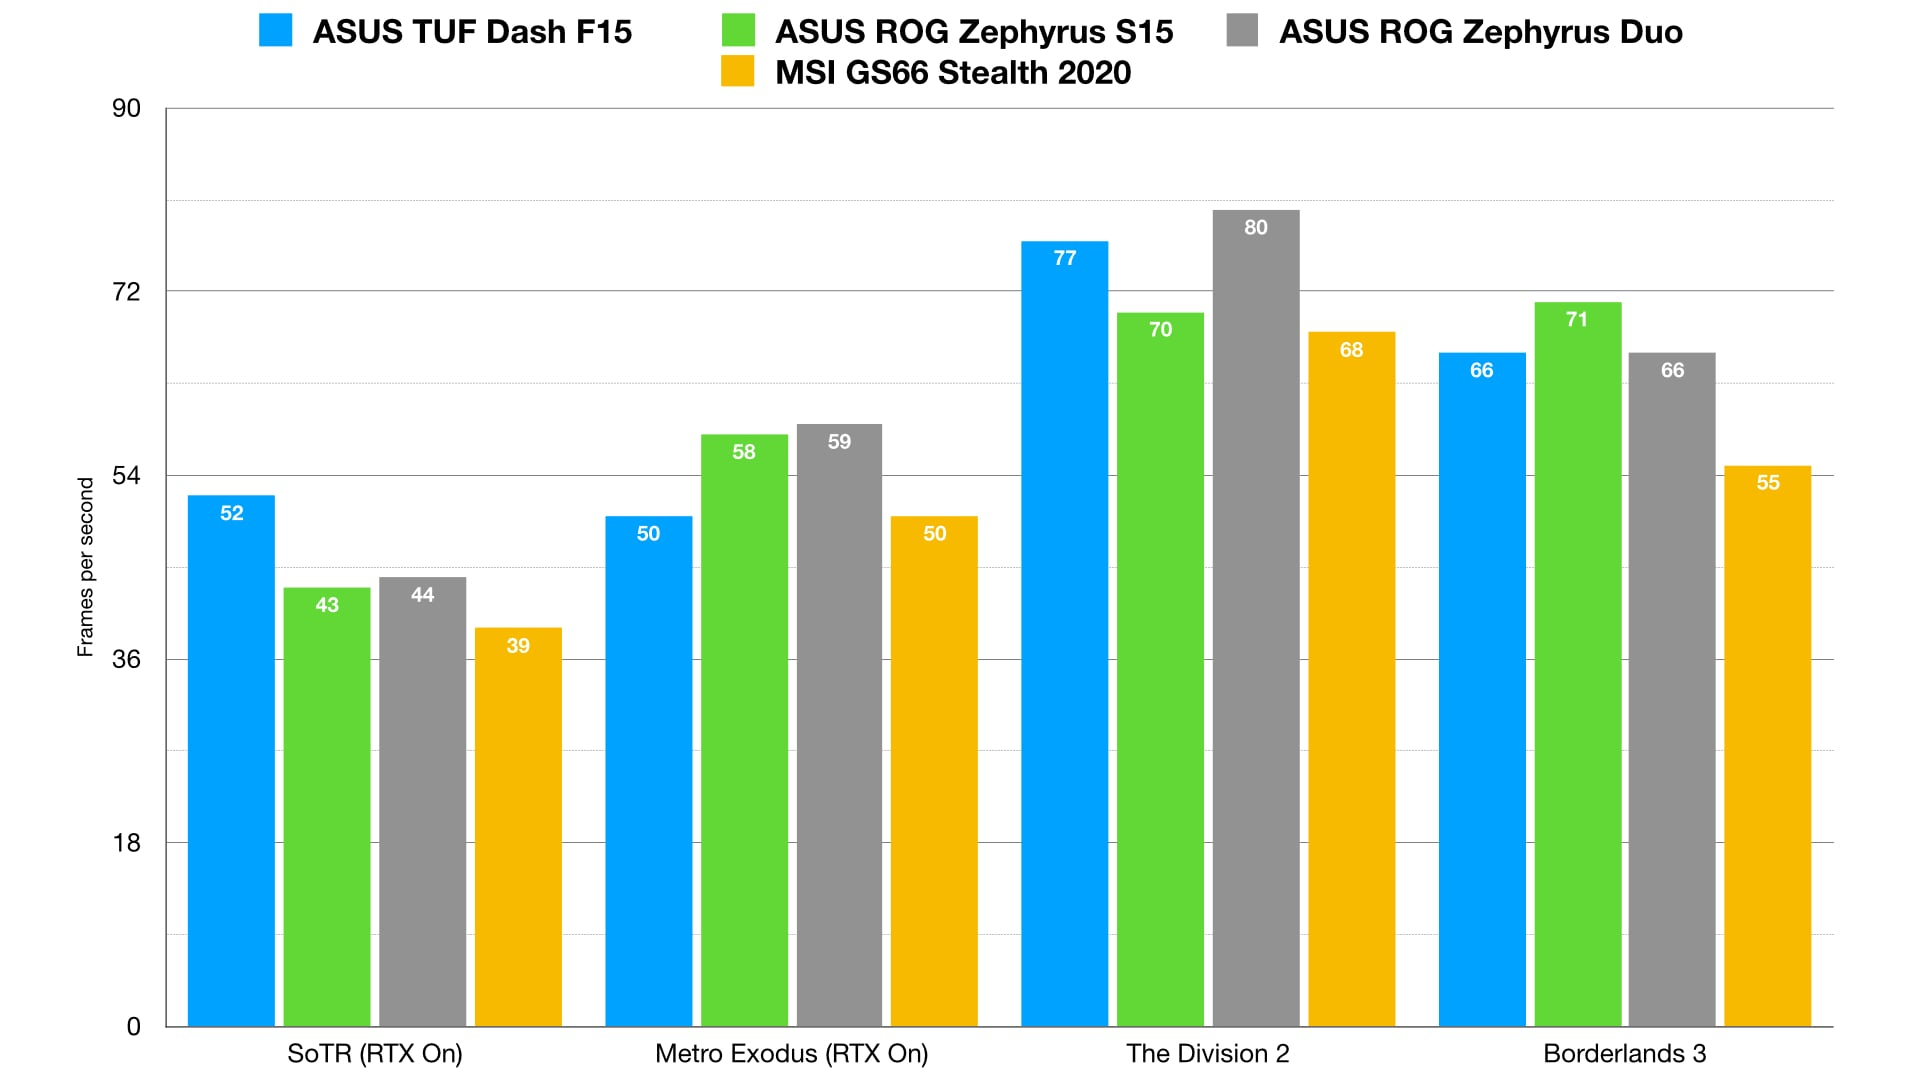 The F15's RTX 3070 might be forced to run in a reduced power state, but the sheer graphical grunt of the newer GPU architecture helps it hold its own against the more power-hungry GPUs in older laptops.